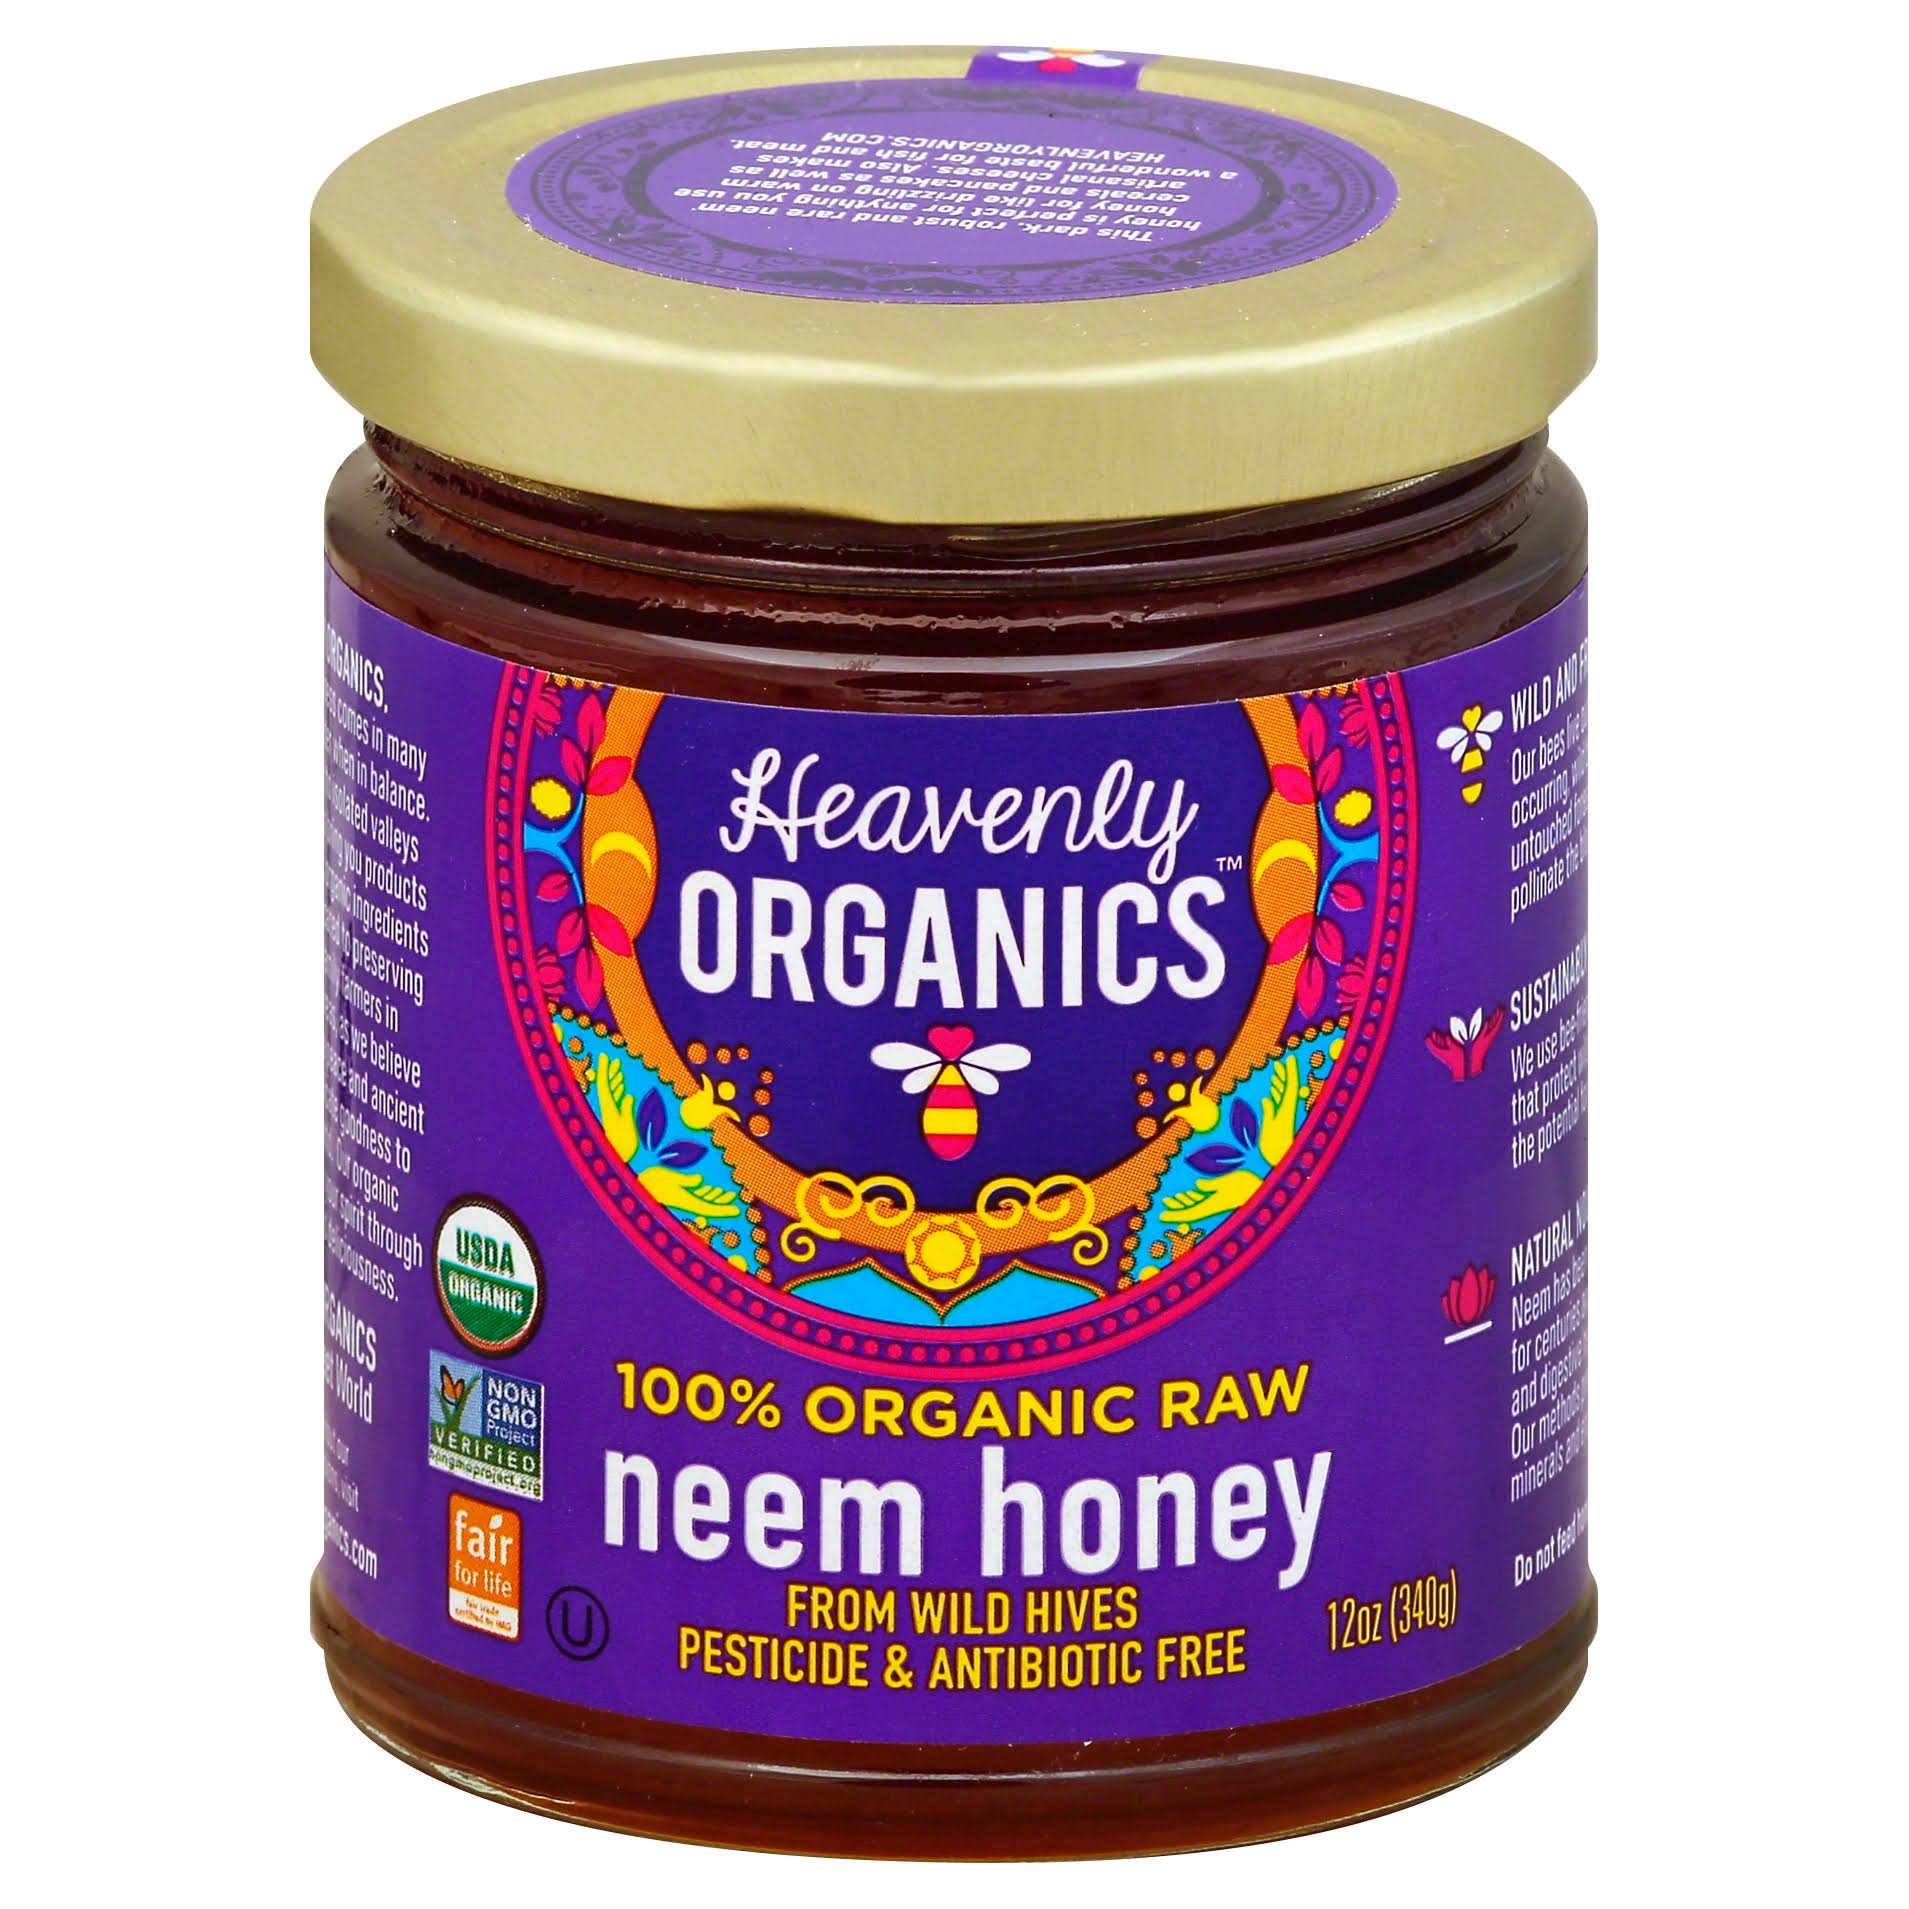 Heavenly Organics 100% Organic Raw Neem Honey - 12oz